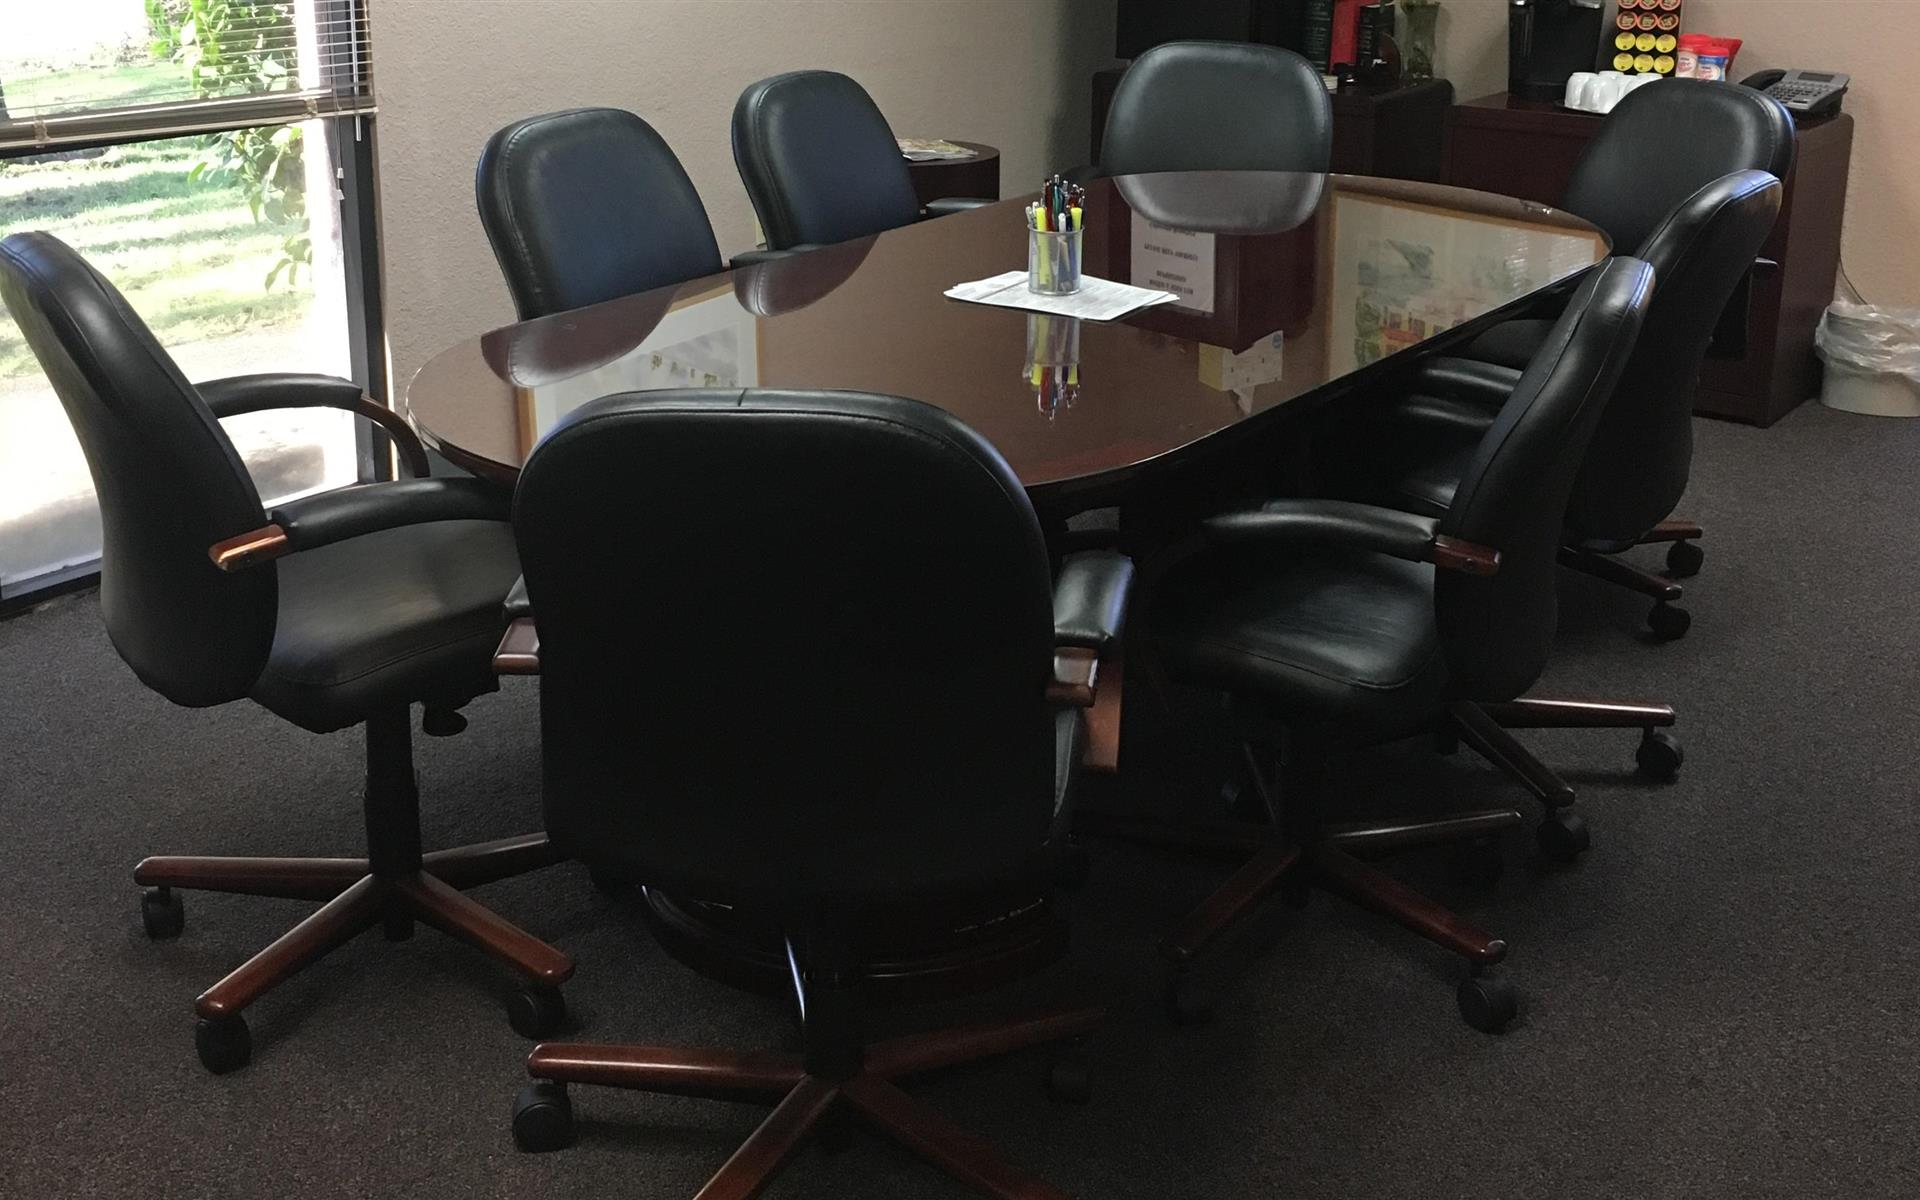 University Reporters - Large Conference Room